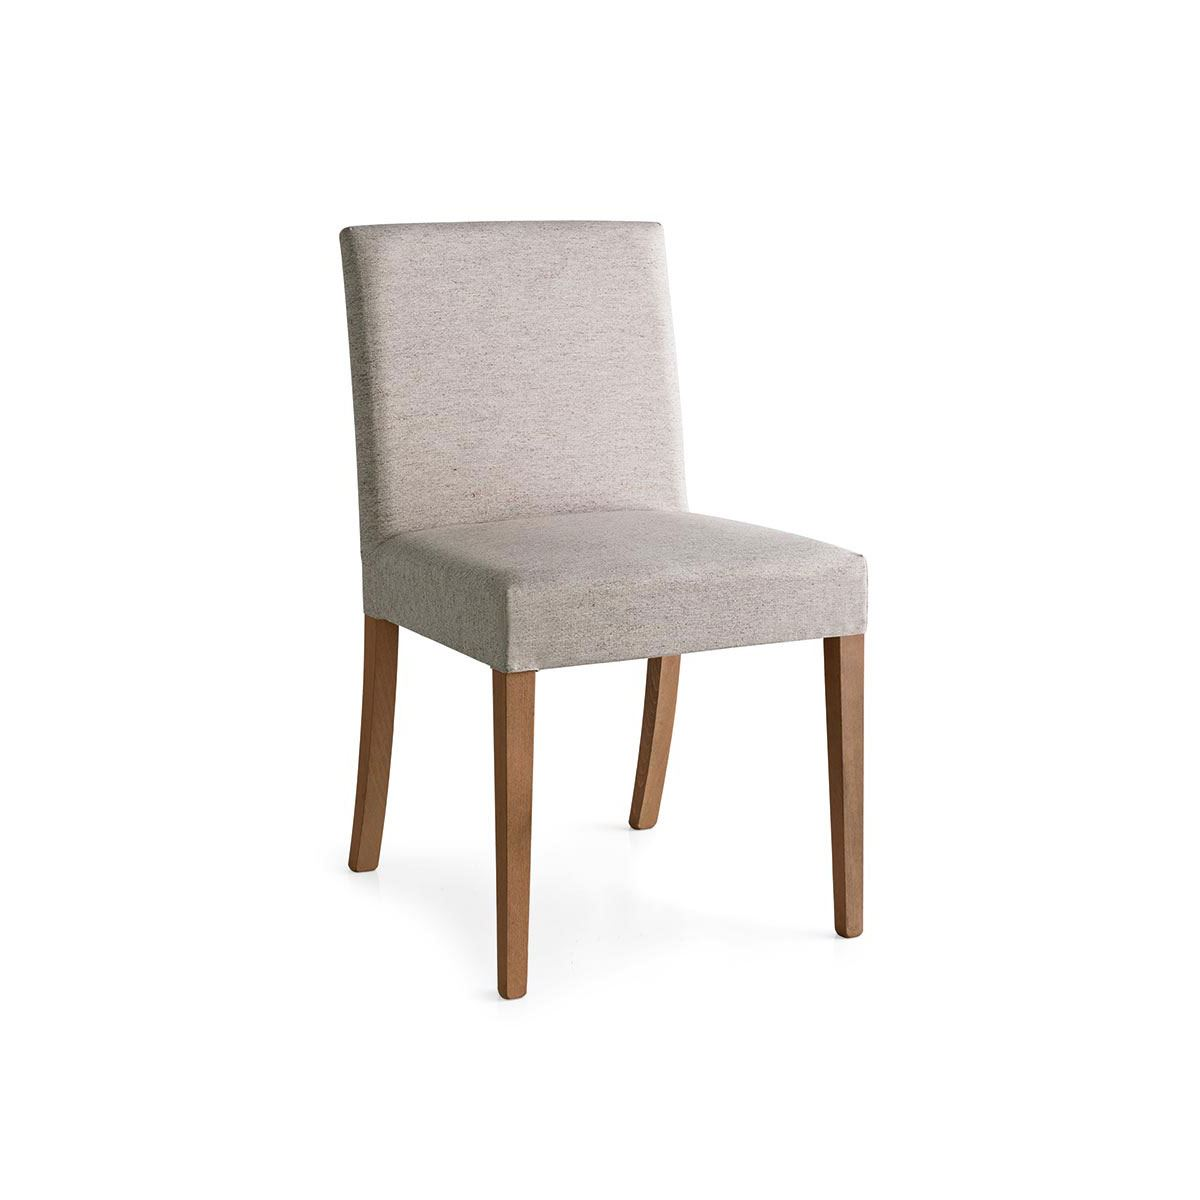 Latina Low Upholstered Wooden Chair ...